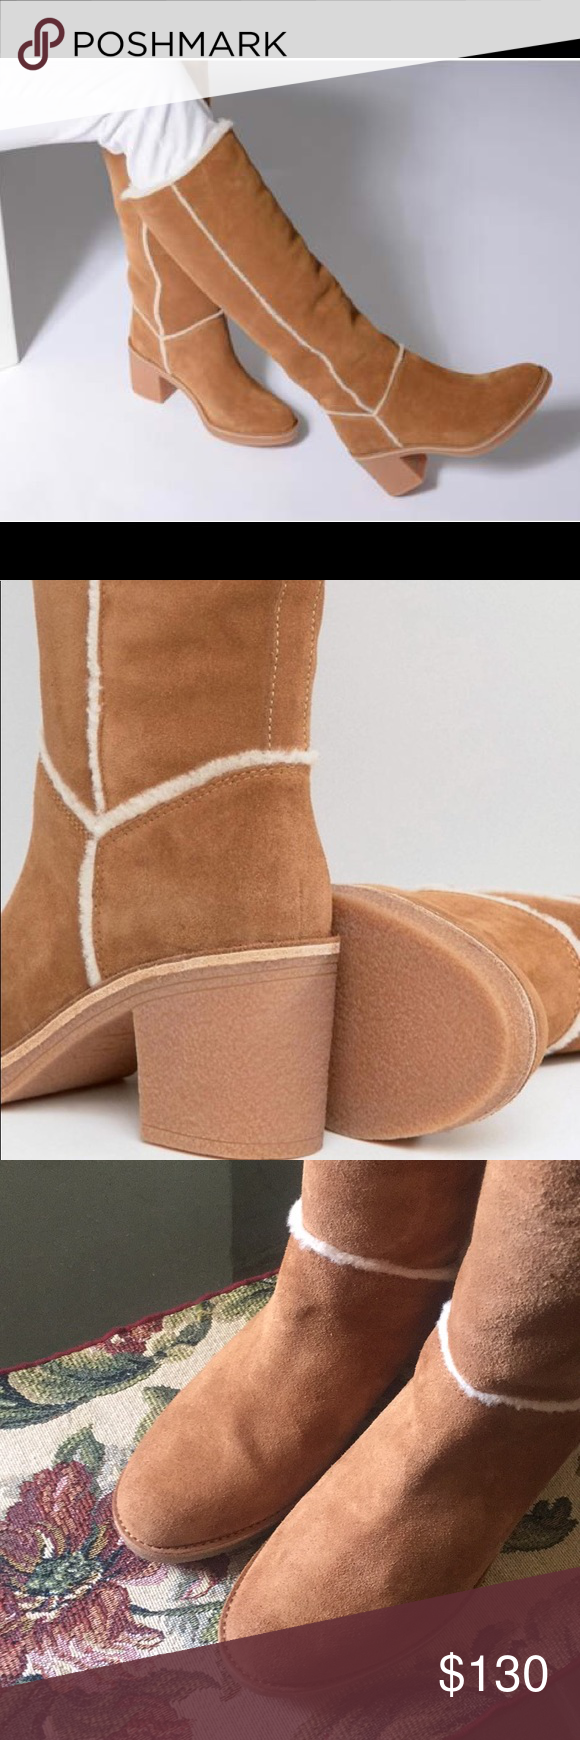 be305b921f7 🎁NEW UGG KASEN TALL CHESTNUT WITHOUT TAGS OR BOX Details A crepe-like  rubber